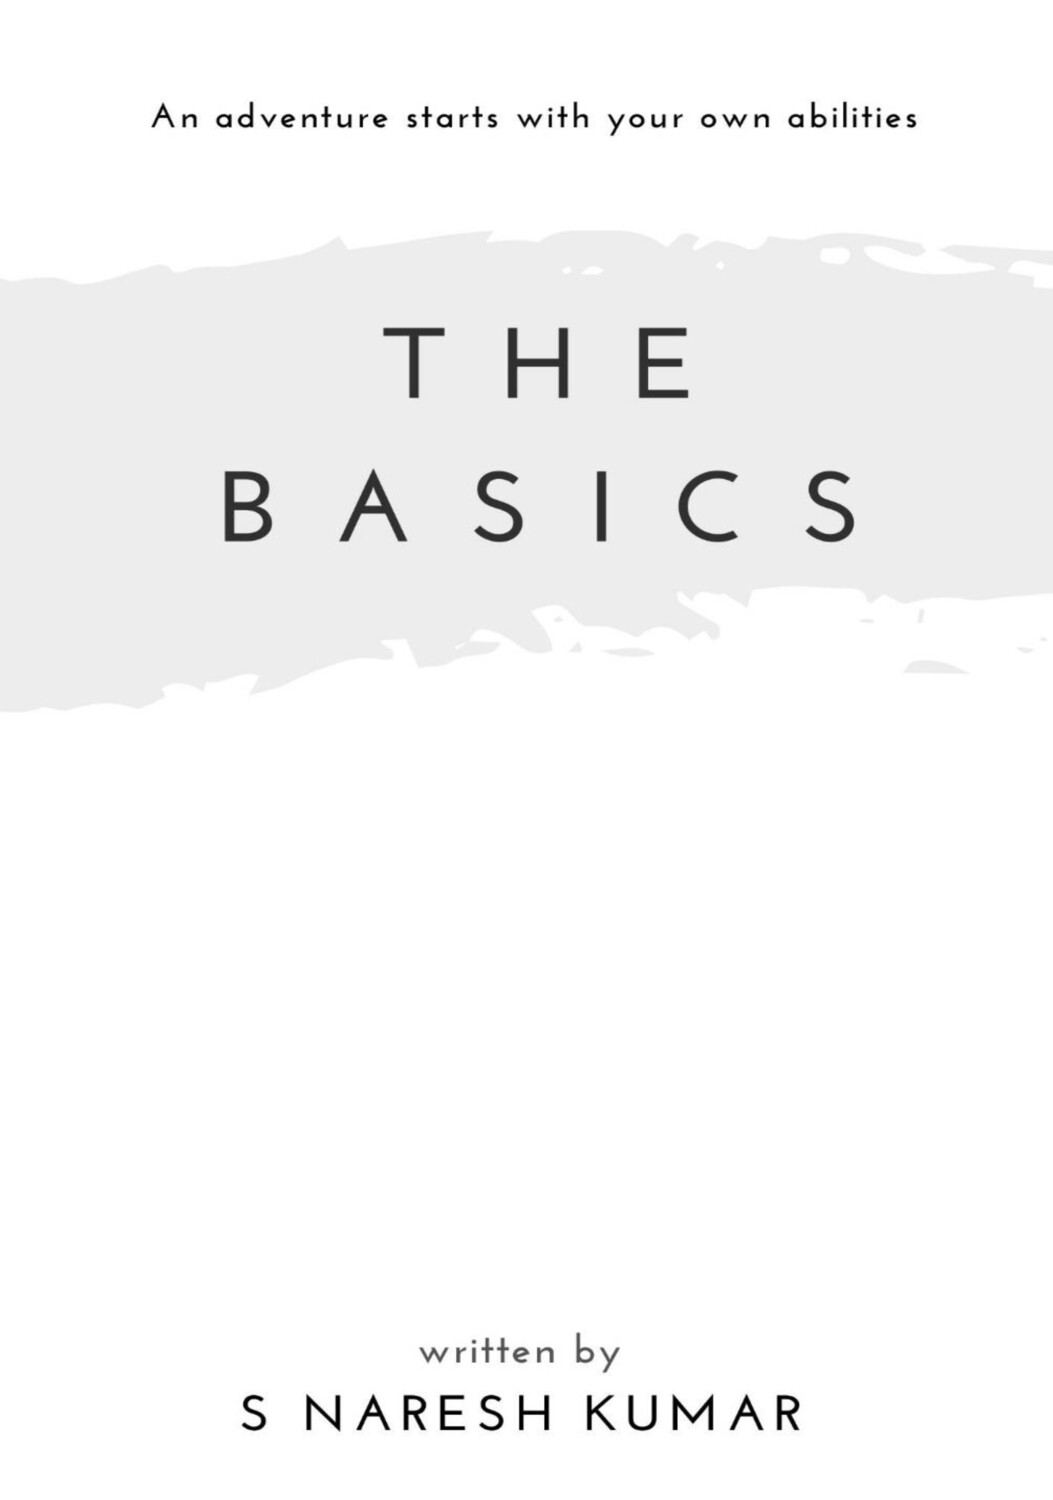 THE BASICS: An adventure starts with your own abilities